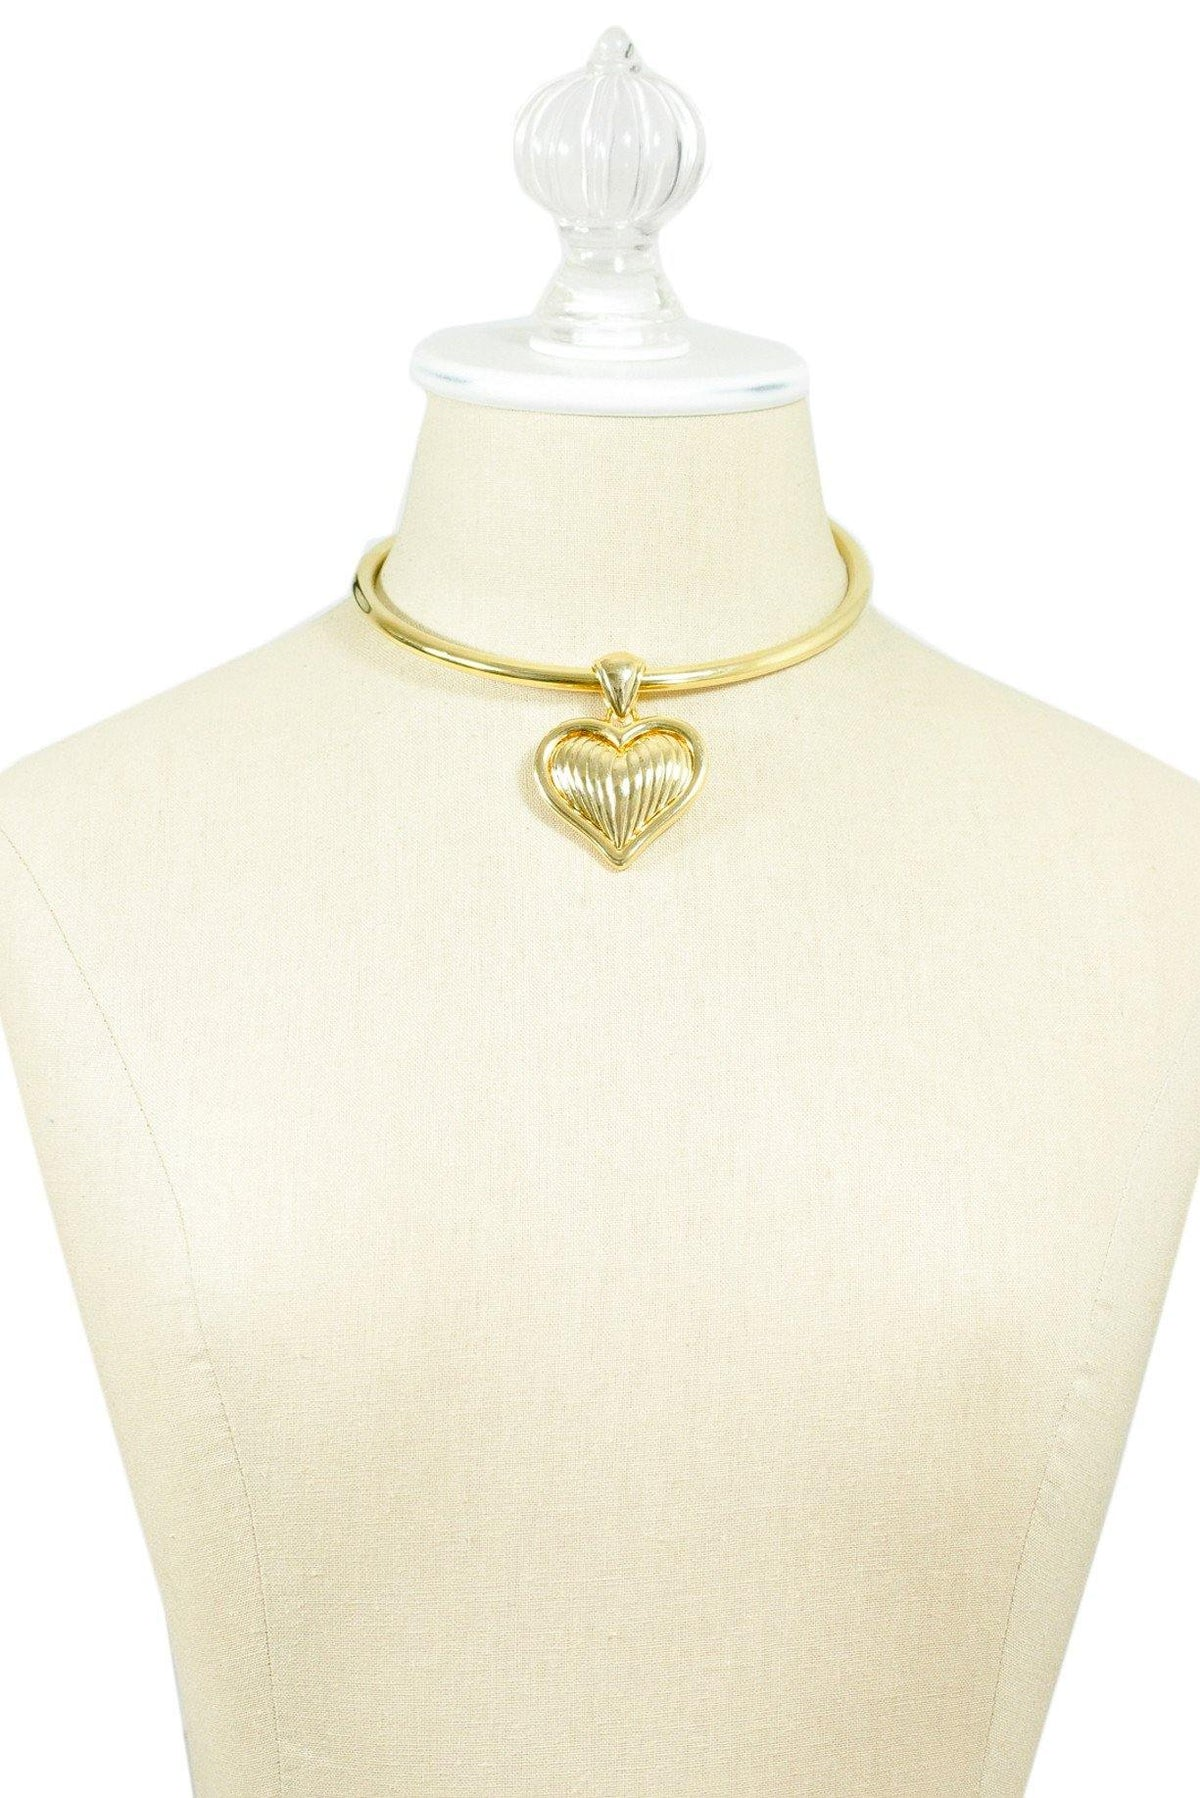 80's Vintage Chunky Heart Choker Necklace